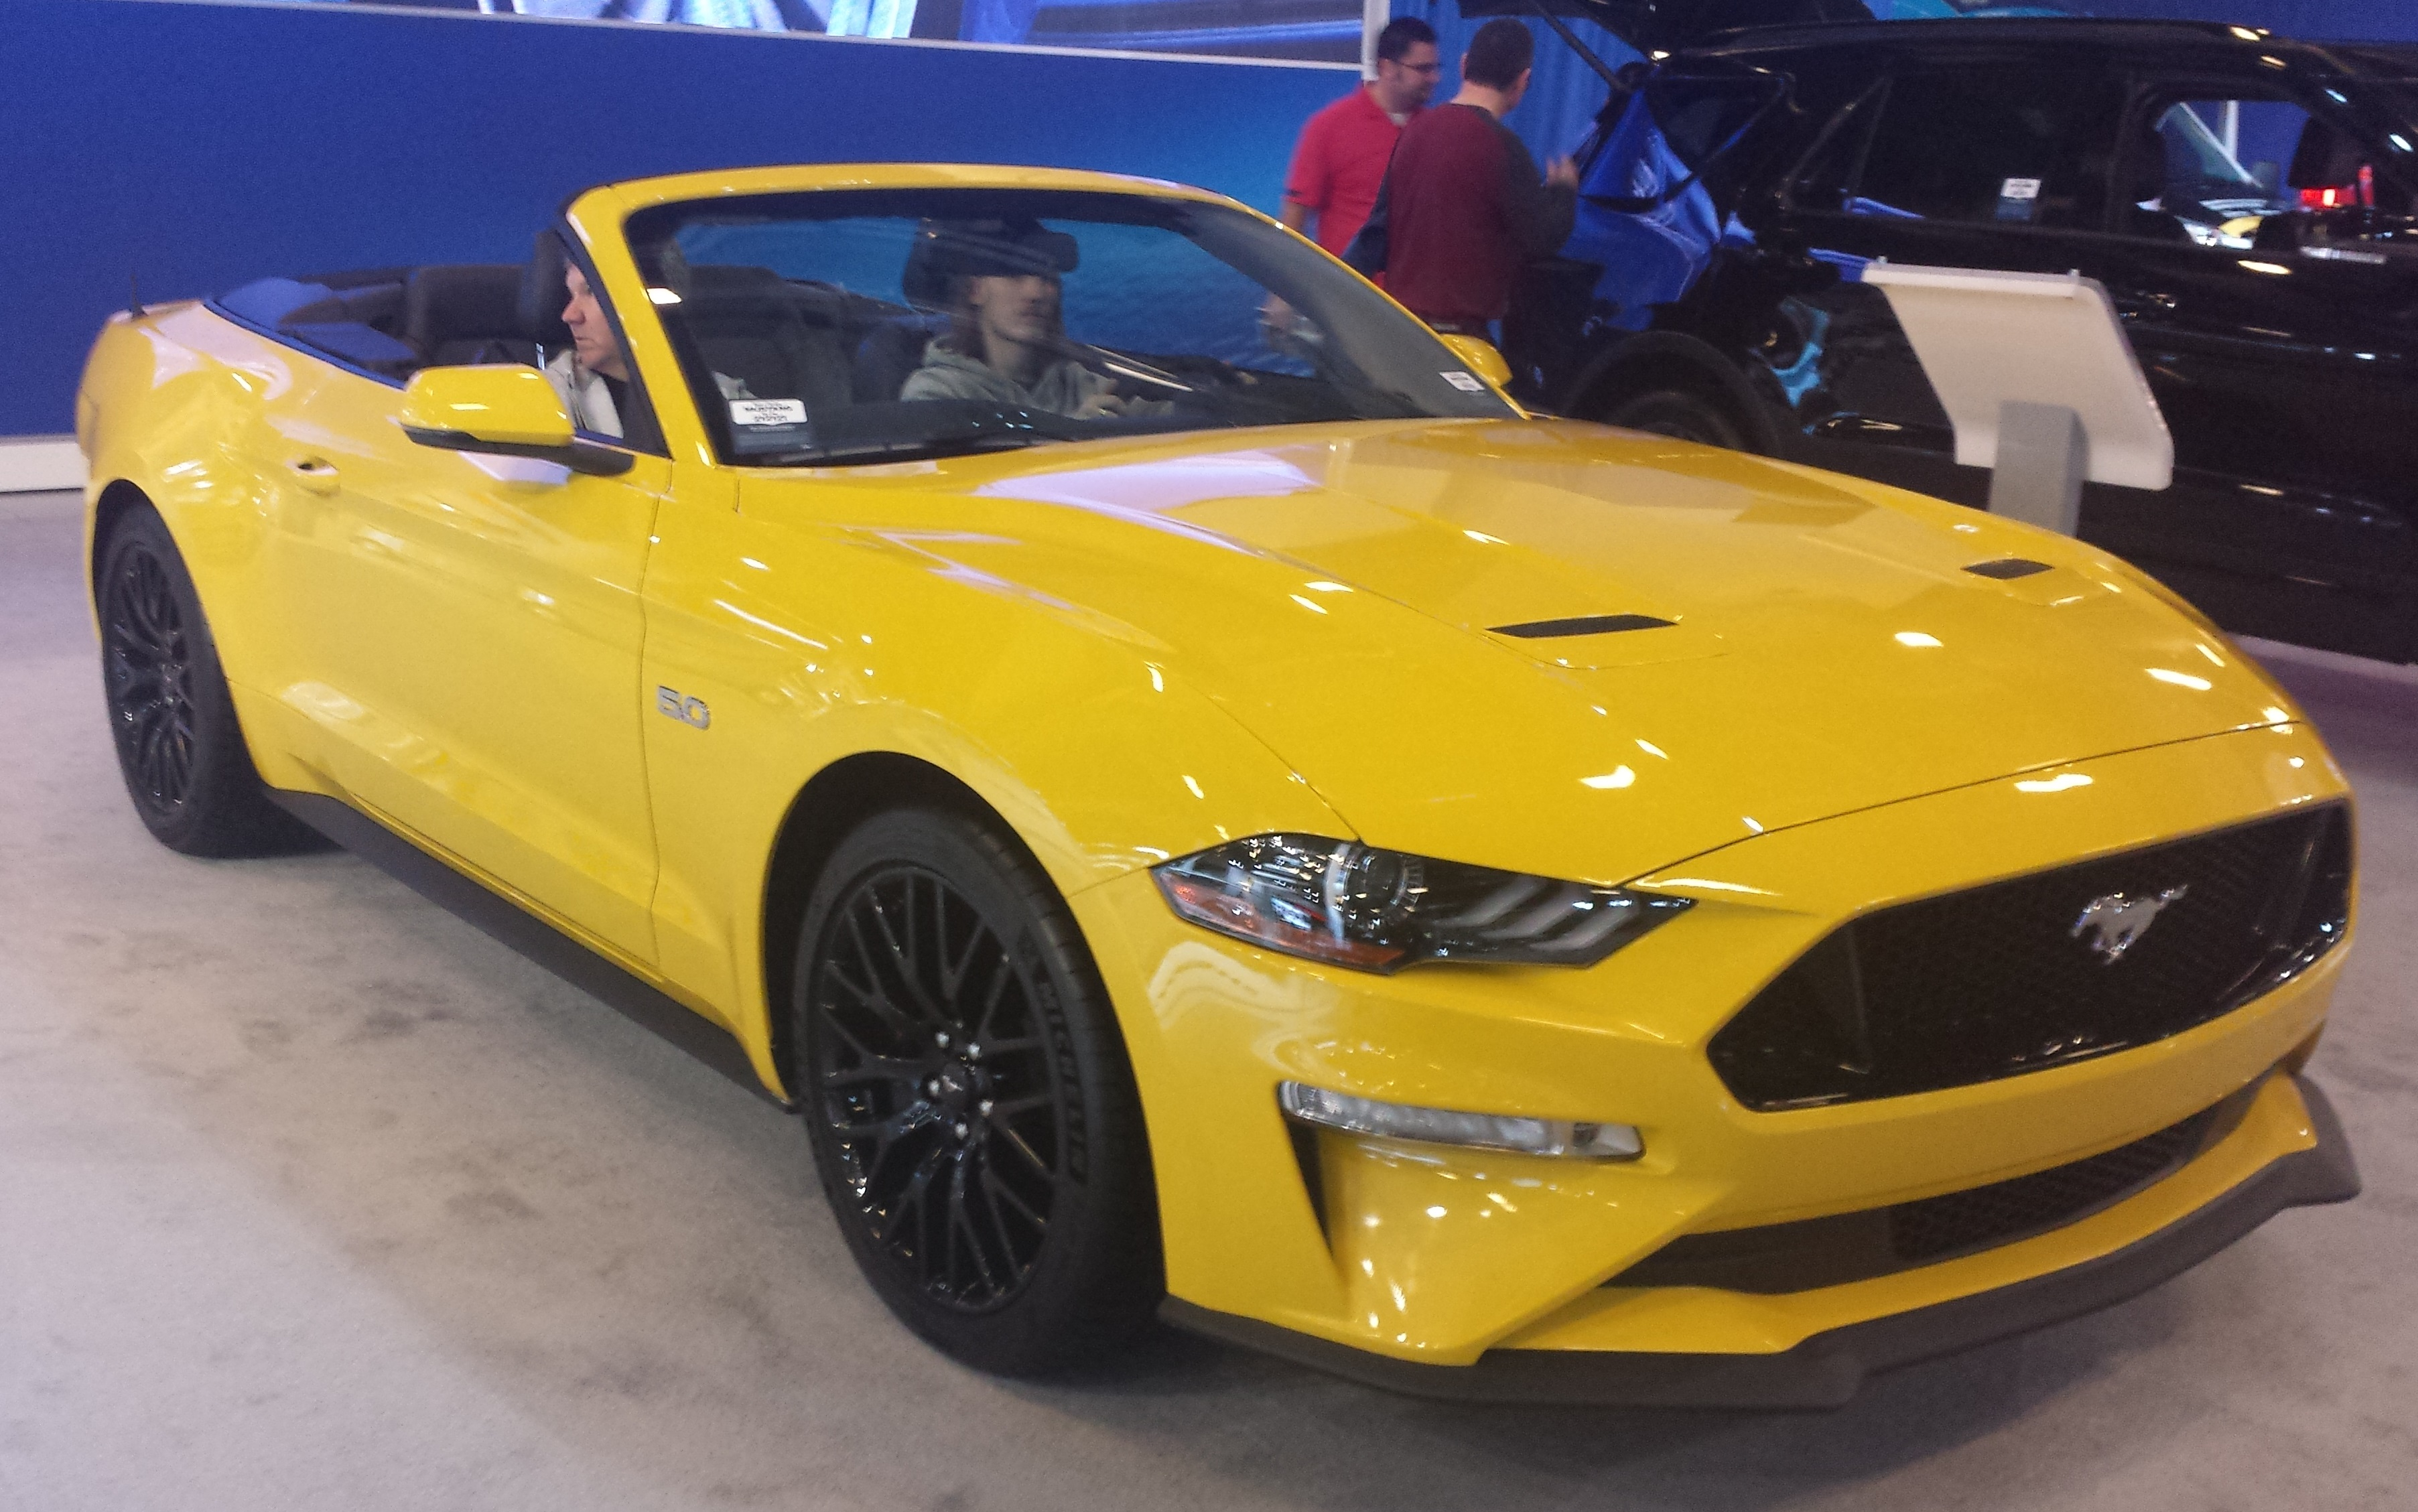 file 2018 ford mustang convertible siam 2018 jpg wikimedia commons rh commons wikimedia org